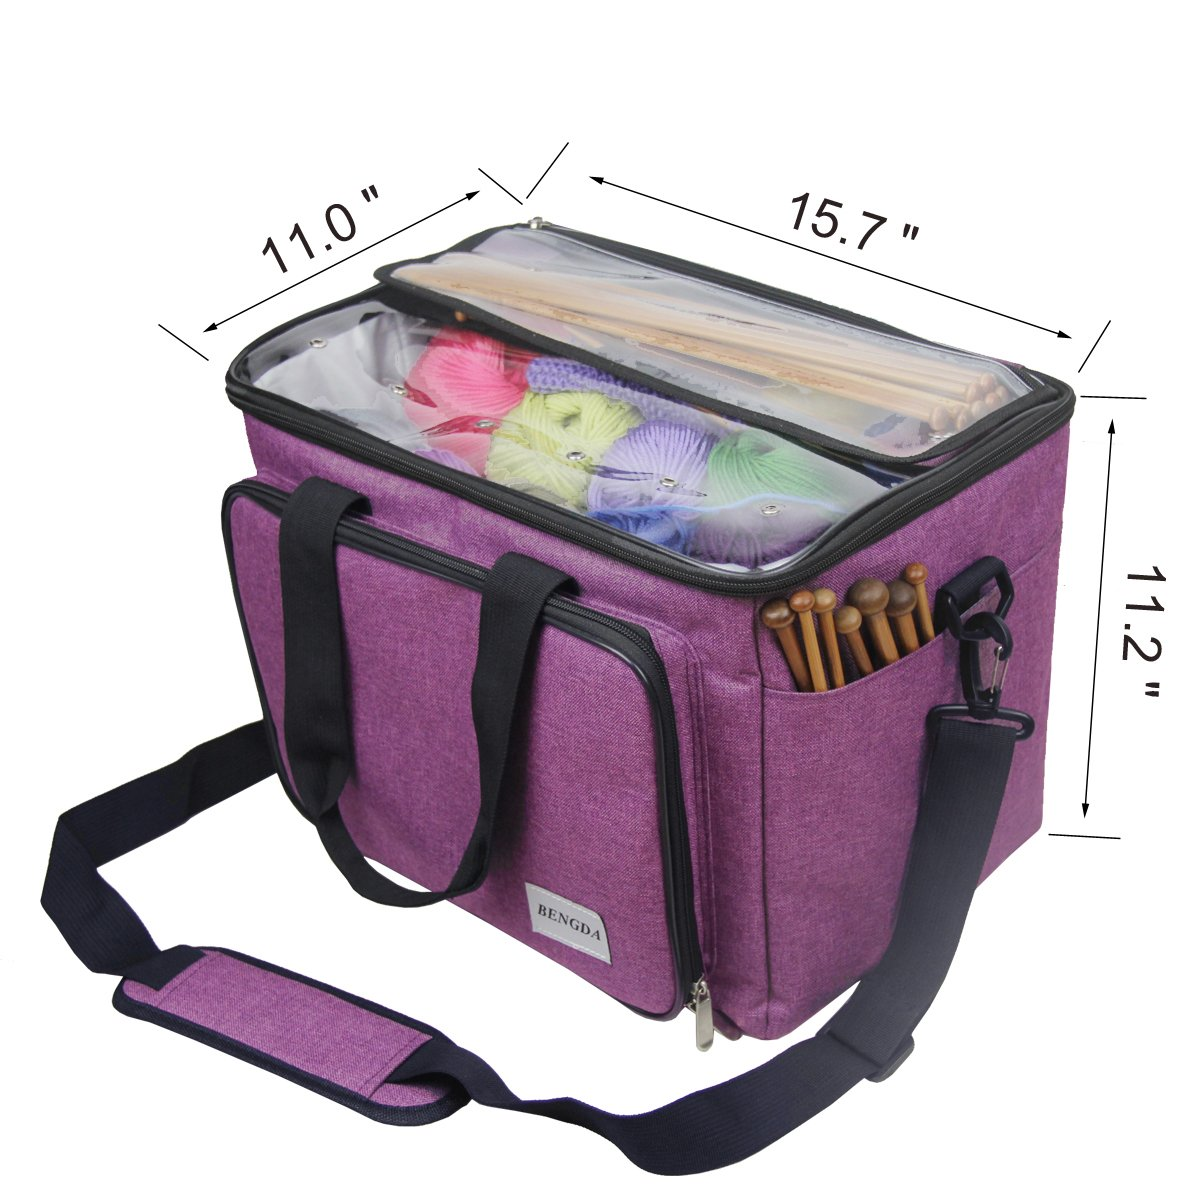 Knitting Bag,Yarn Tote Organizer with Inner Divider for Crochet Hooks, Knitting Needles(up to 14''),Project and Supplies,Easy to Carry,High Capacity (Purple) by BENGDA (Image #3)